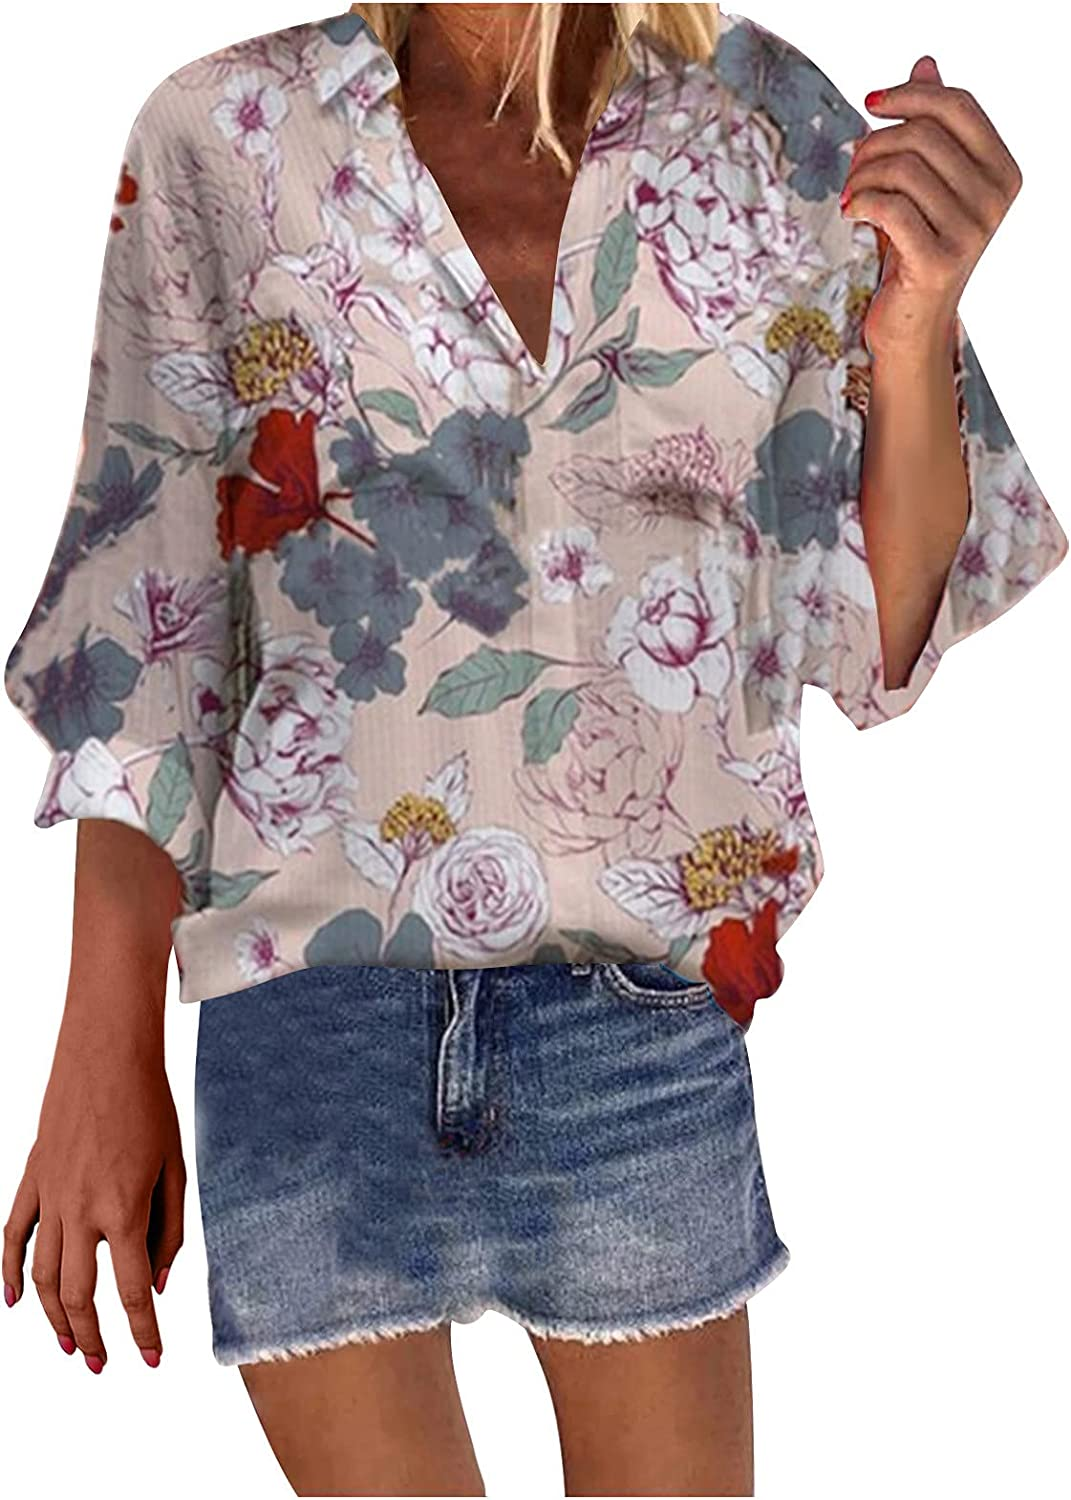 Summer Tops for Women Sexy V Neck Tunic Tops 3/4 Sleeve Shirts Funny Print Blouse Fashion Loose Tees